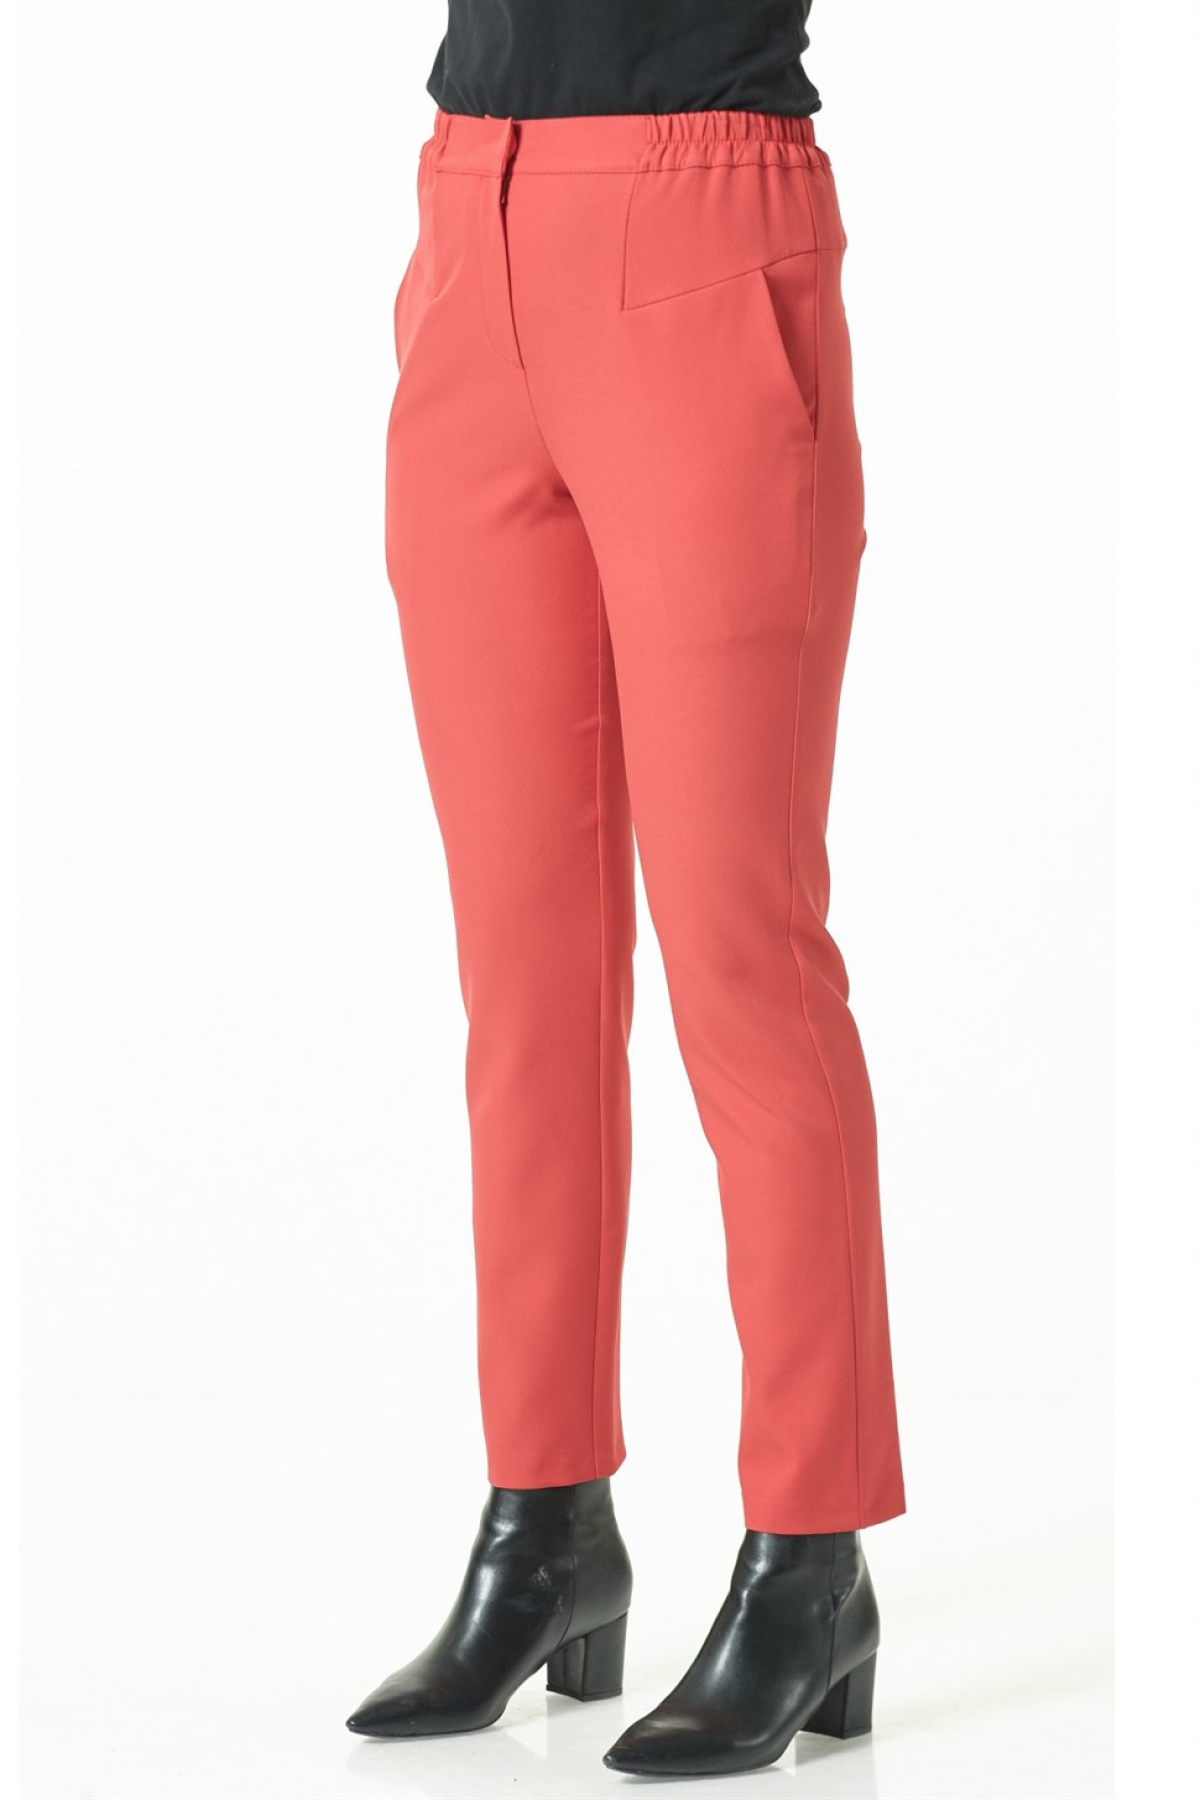 Armine - Women Pants -  Red